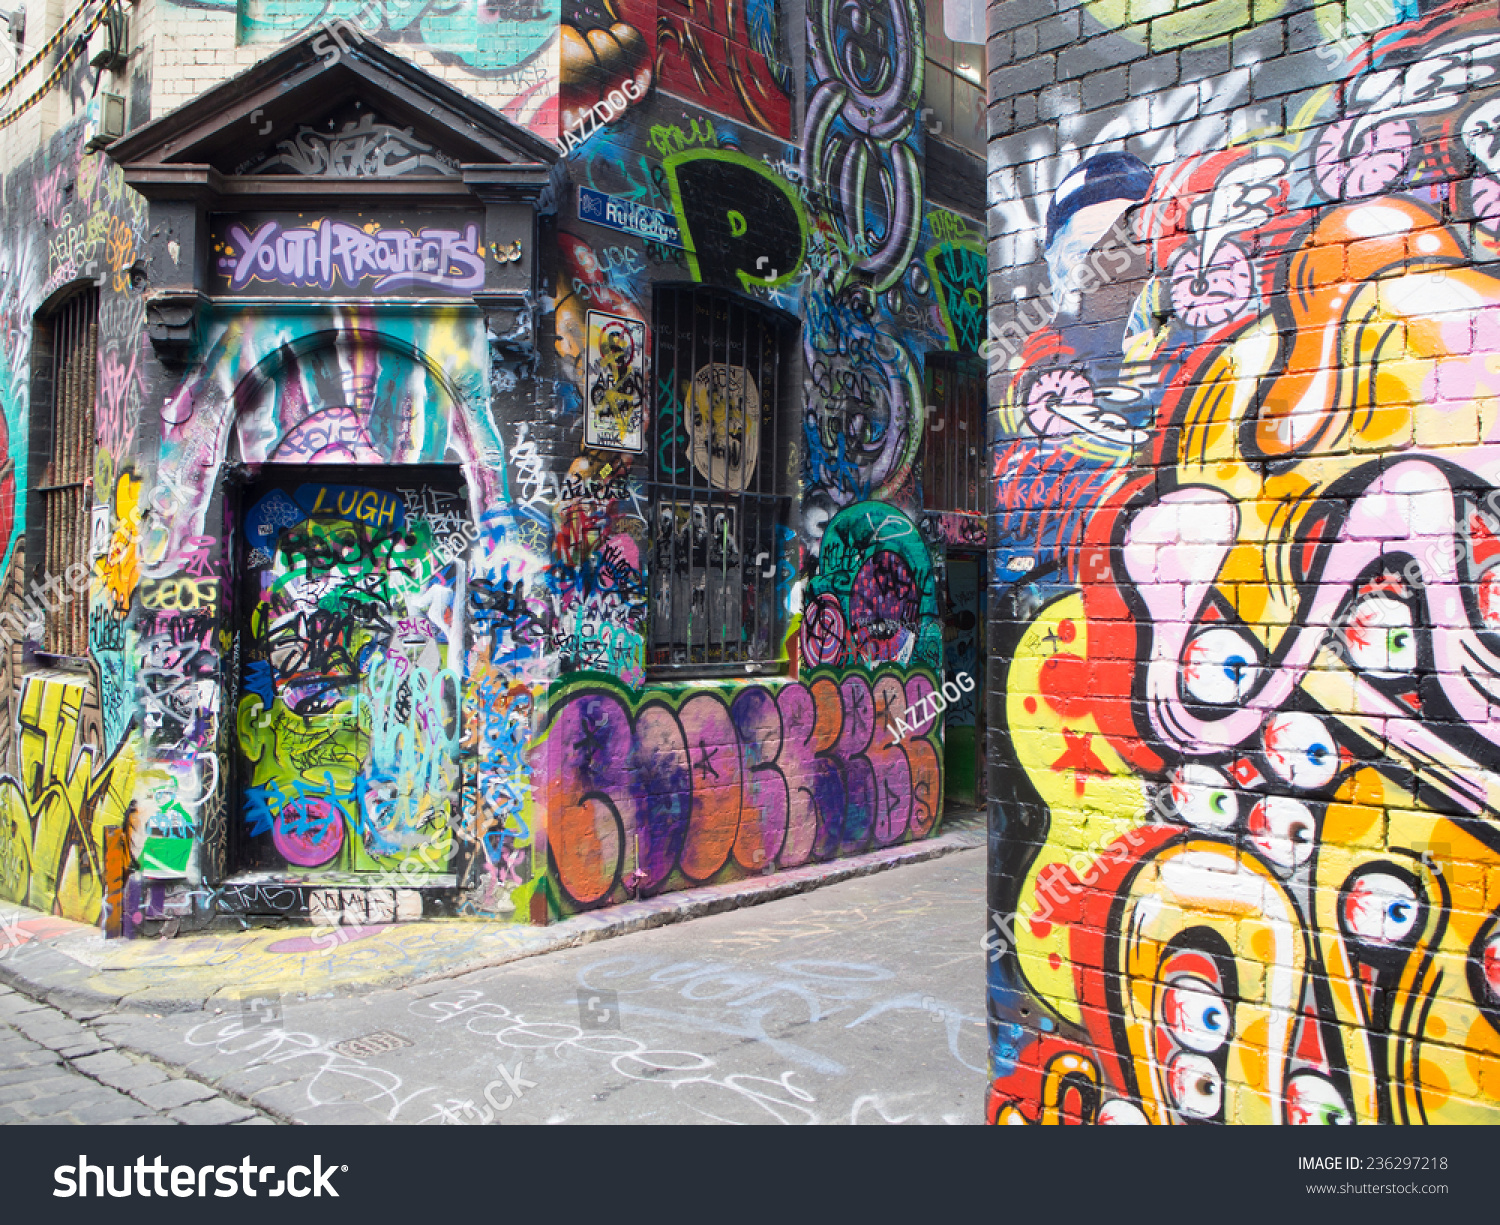 Melbournes Graffiti Created By Unidentified Artist One Of The Most Famous Landmark For Tourist